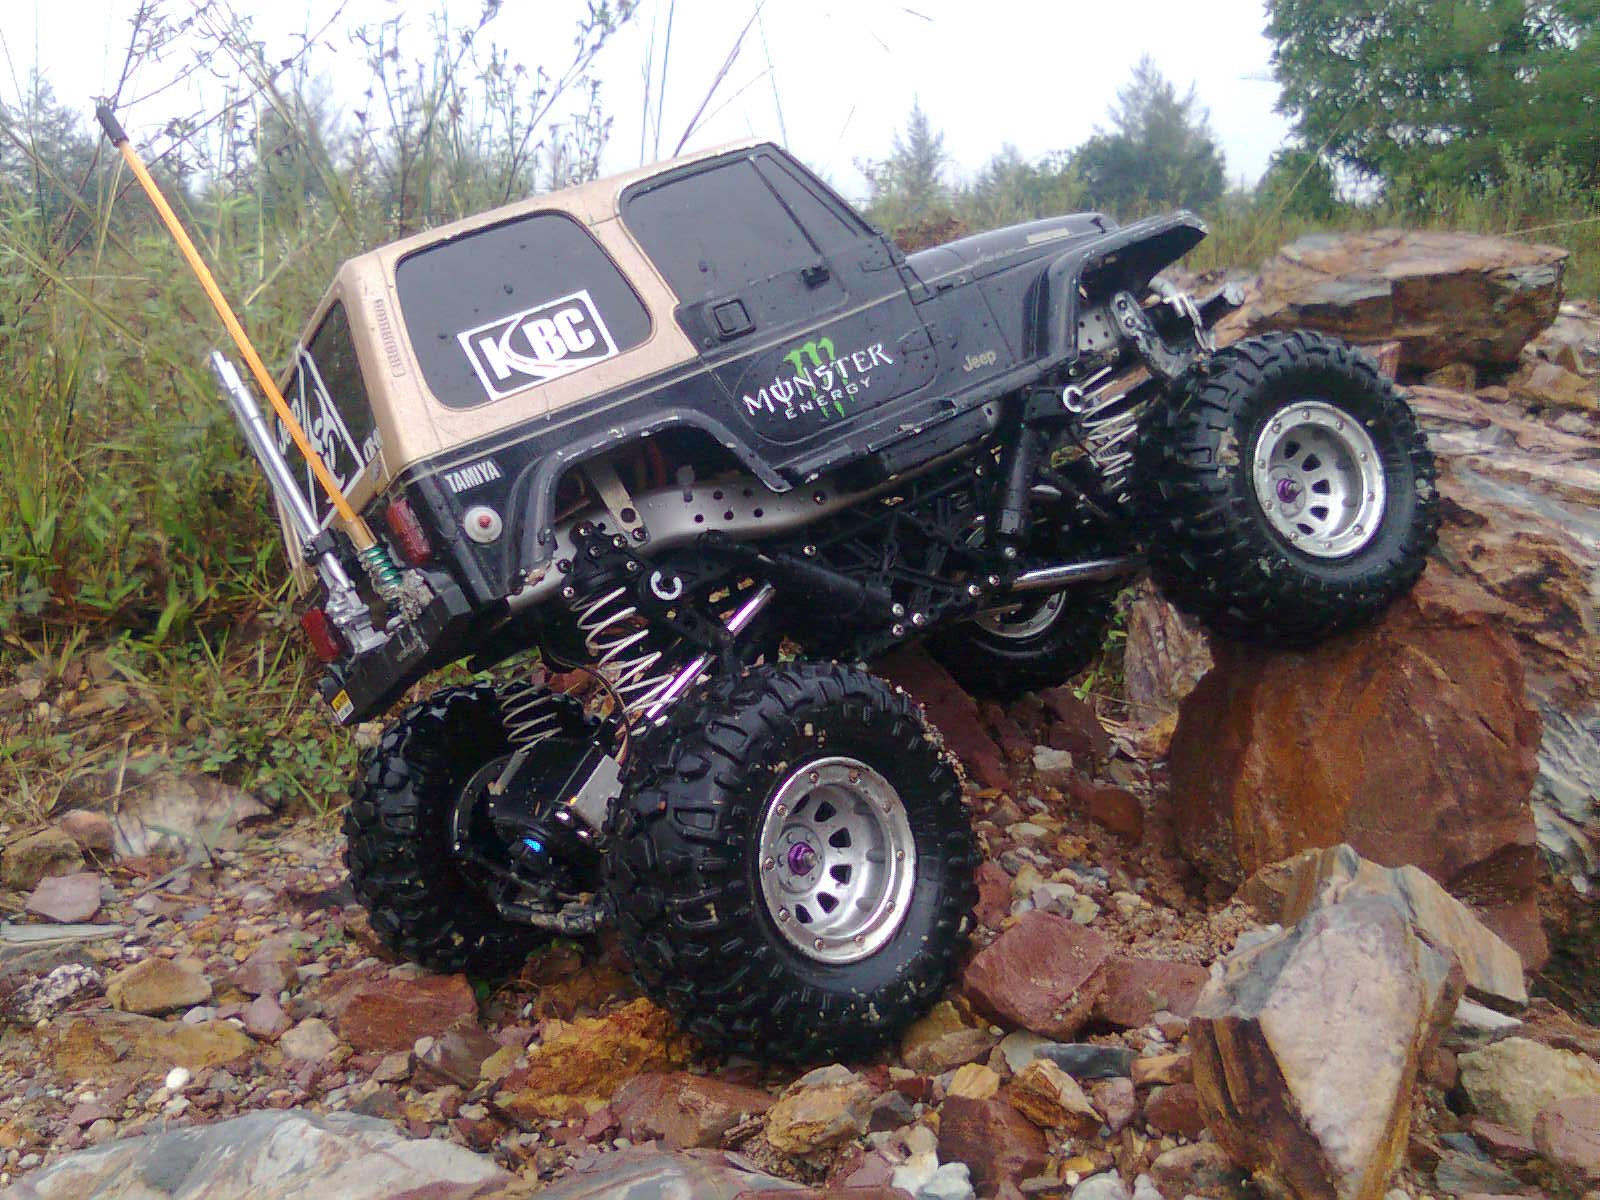 2007 Jeep Cherokee For Sale Malaysia RC Crawler - Page 2 - R/C Tech Forums